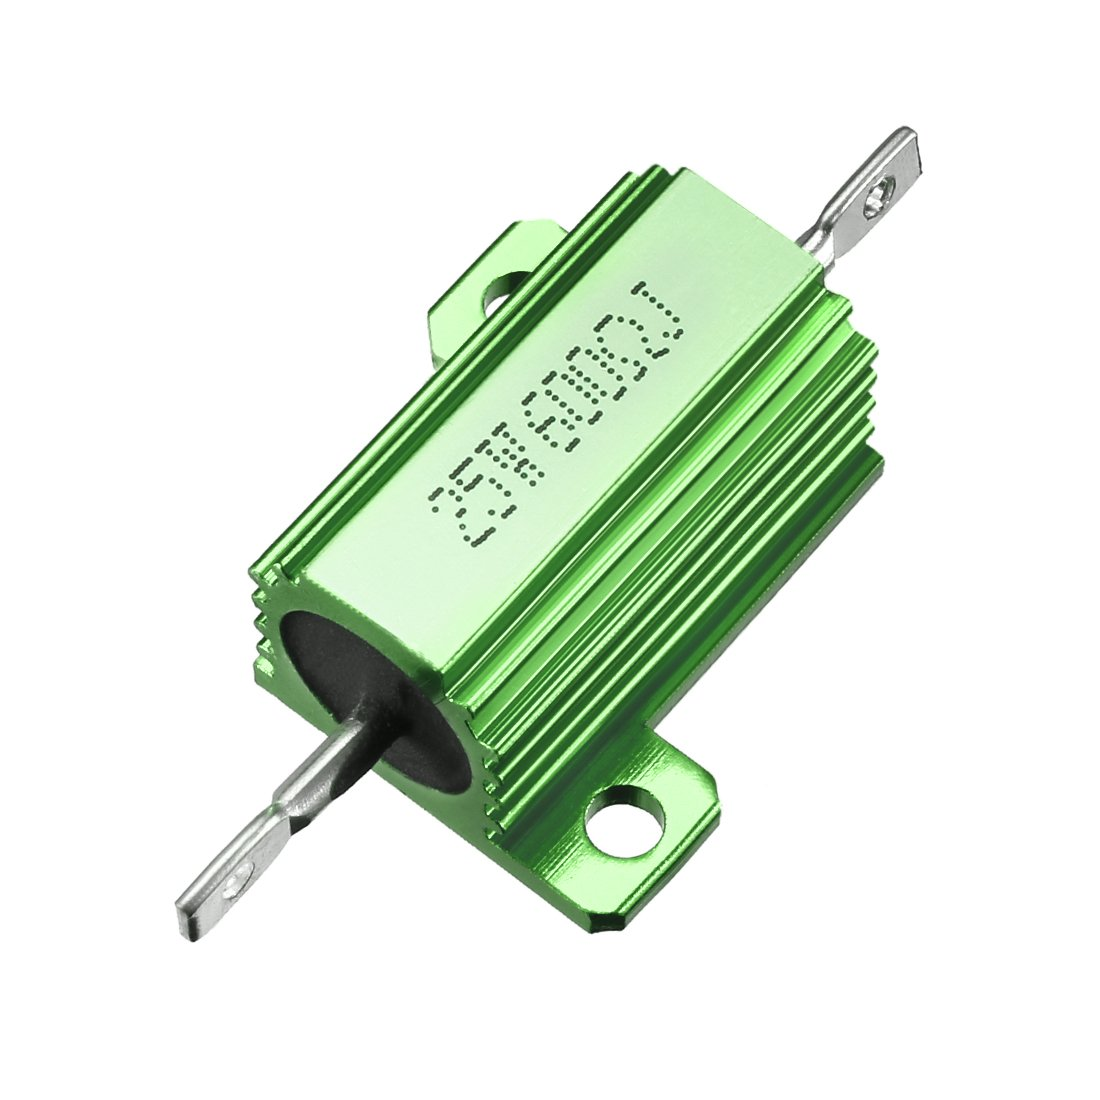 sourcing map 25W 600 Ohm 5% Aluminum Housing Resistor Screw Tap Chassis Mounted Aluminum Case Wirewound Resistor Load Resistors Green 1 pcs